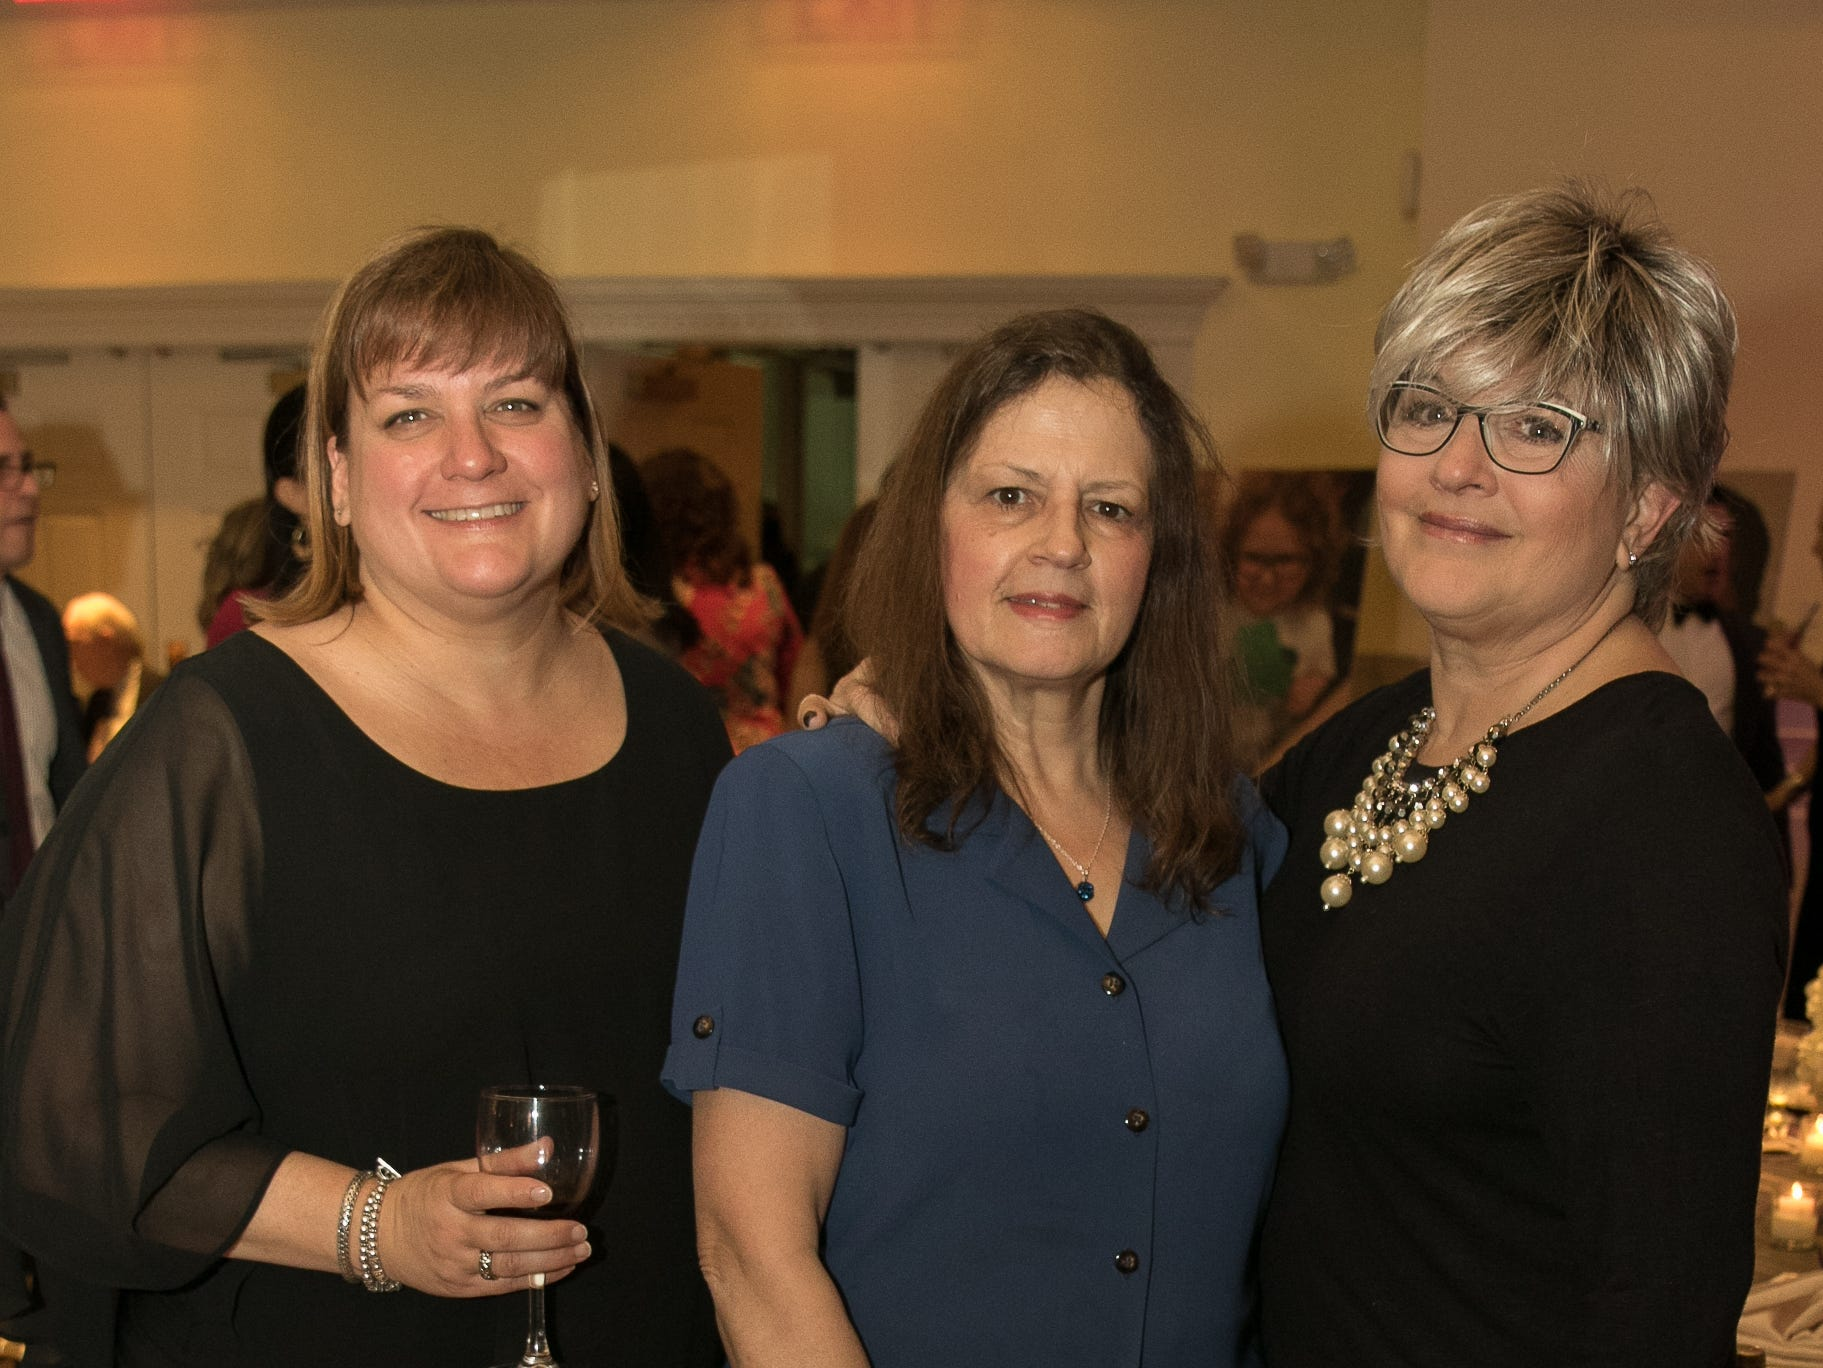 Teresa Golin, Sue Quimby, Trish Riggio. The Emmanuel Cancer Foundation 9th Annual Bash at The Brick House. 03/15/2019